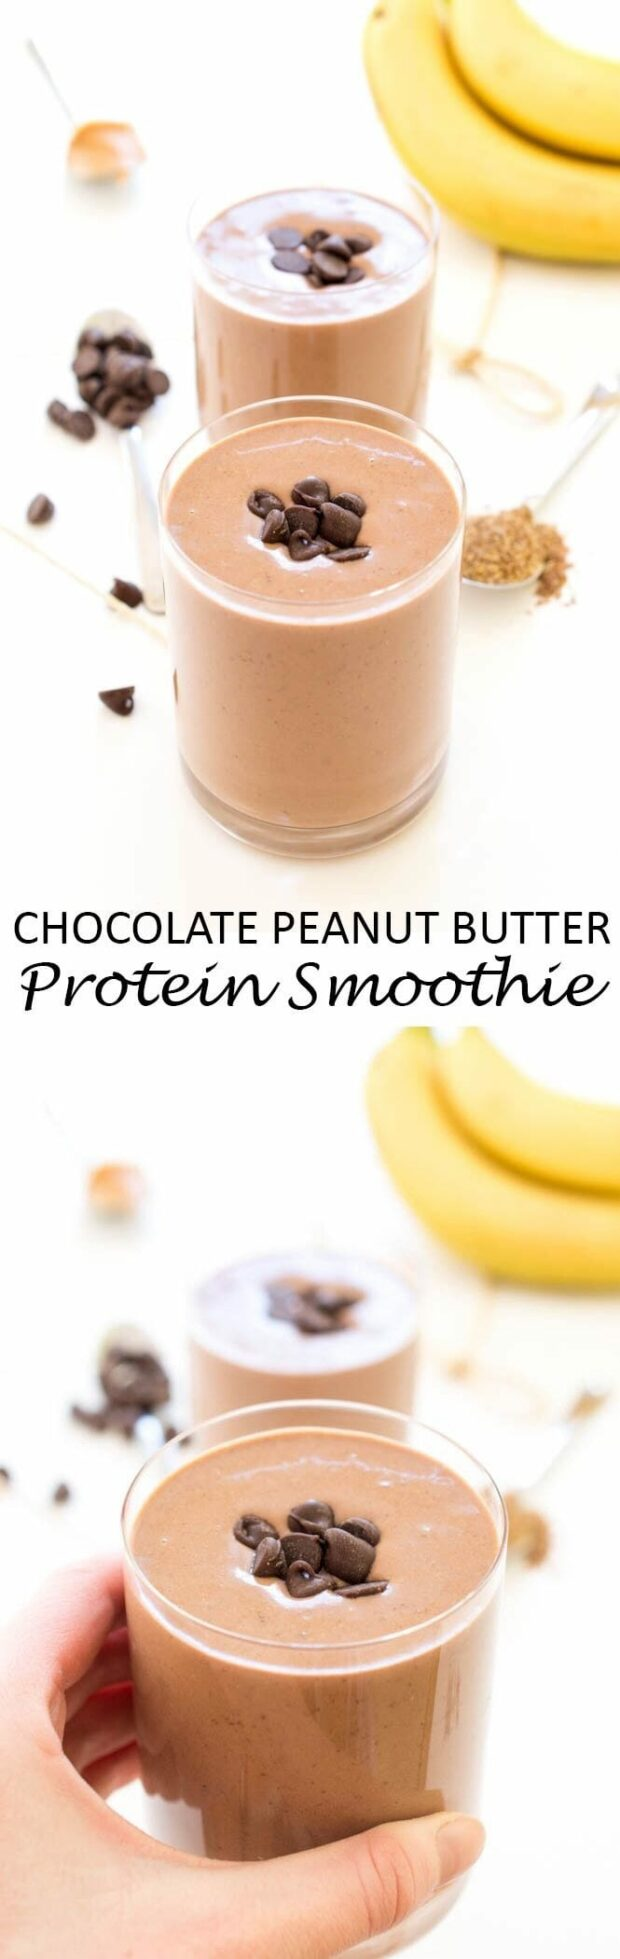 12 Perfect Post-Workout Protein Smoothies (Part 1) - Post-Workout Smoothies, Post-Workout Protein Smoothies, Post-Workout Meals, Post-Workout food